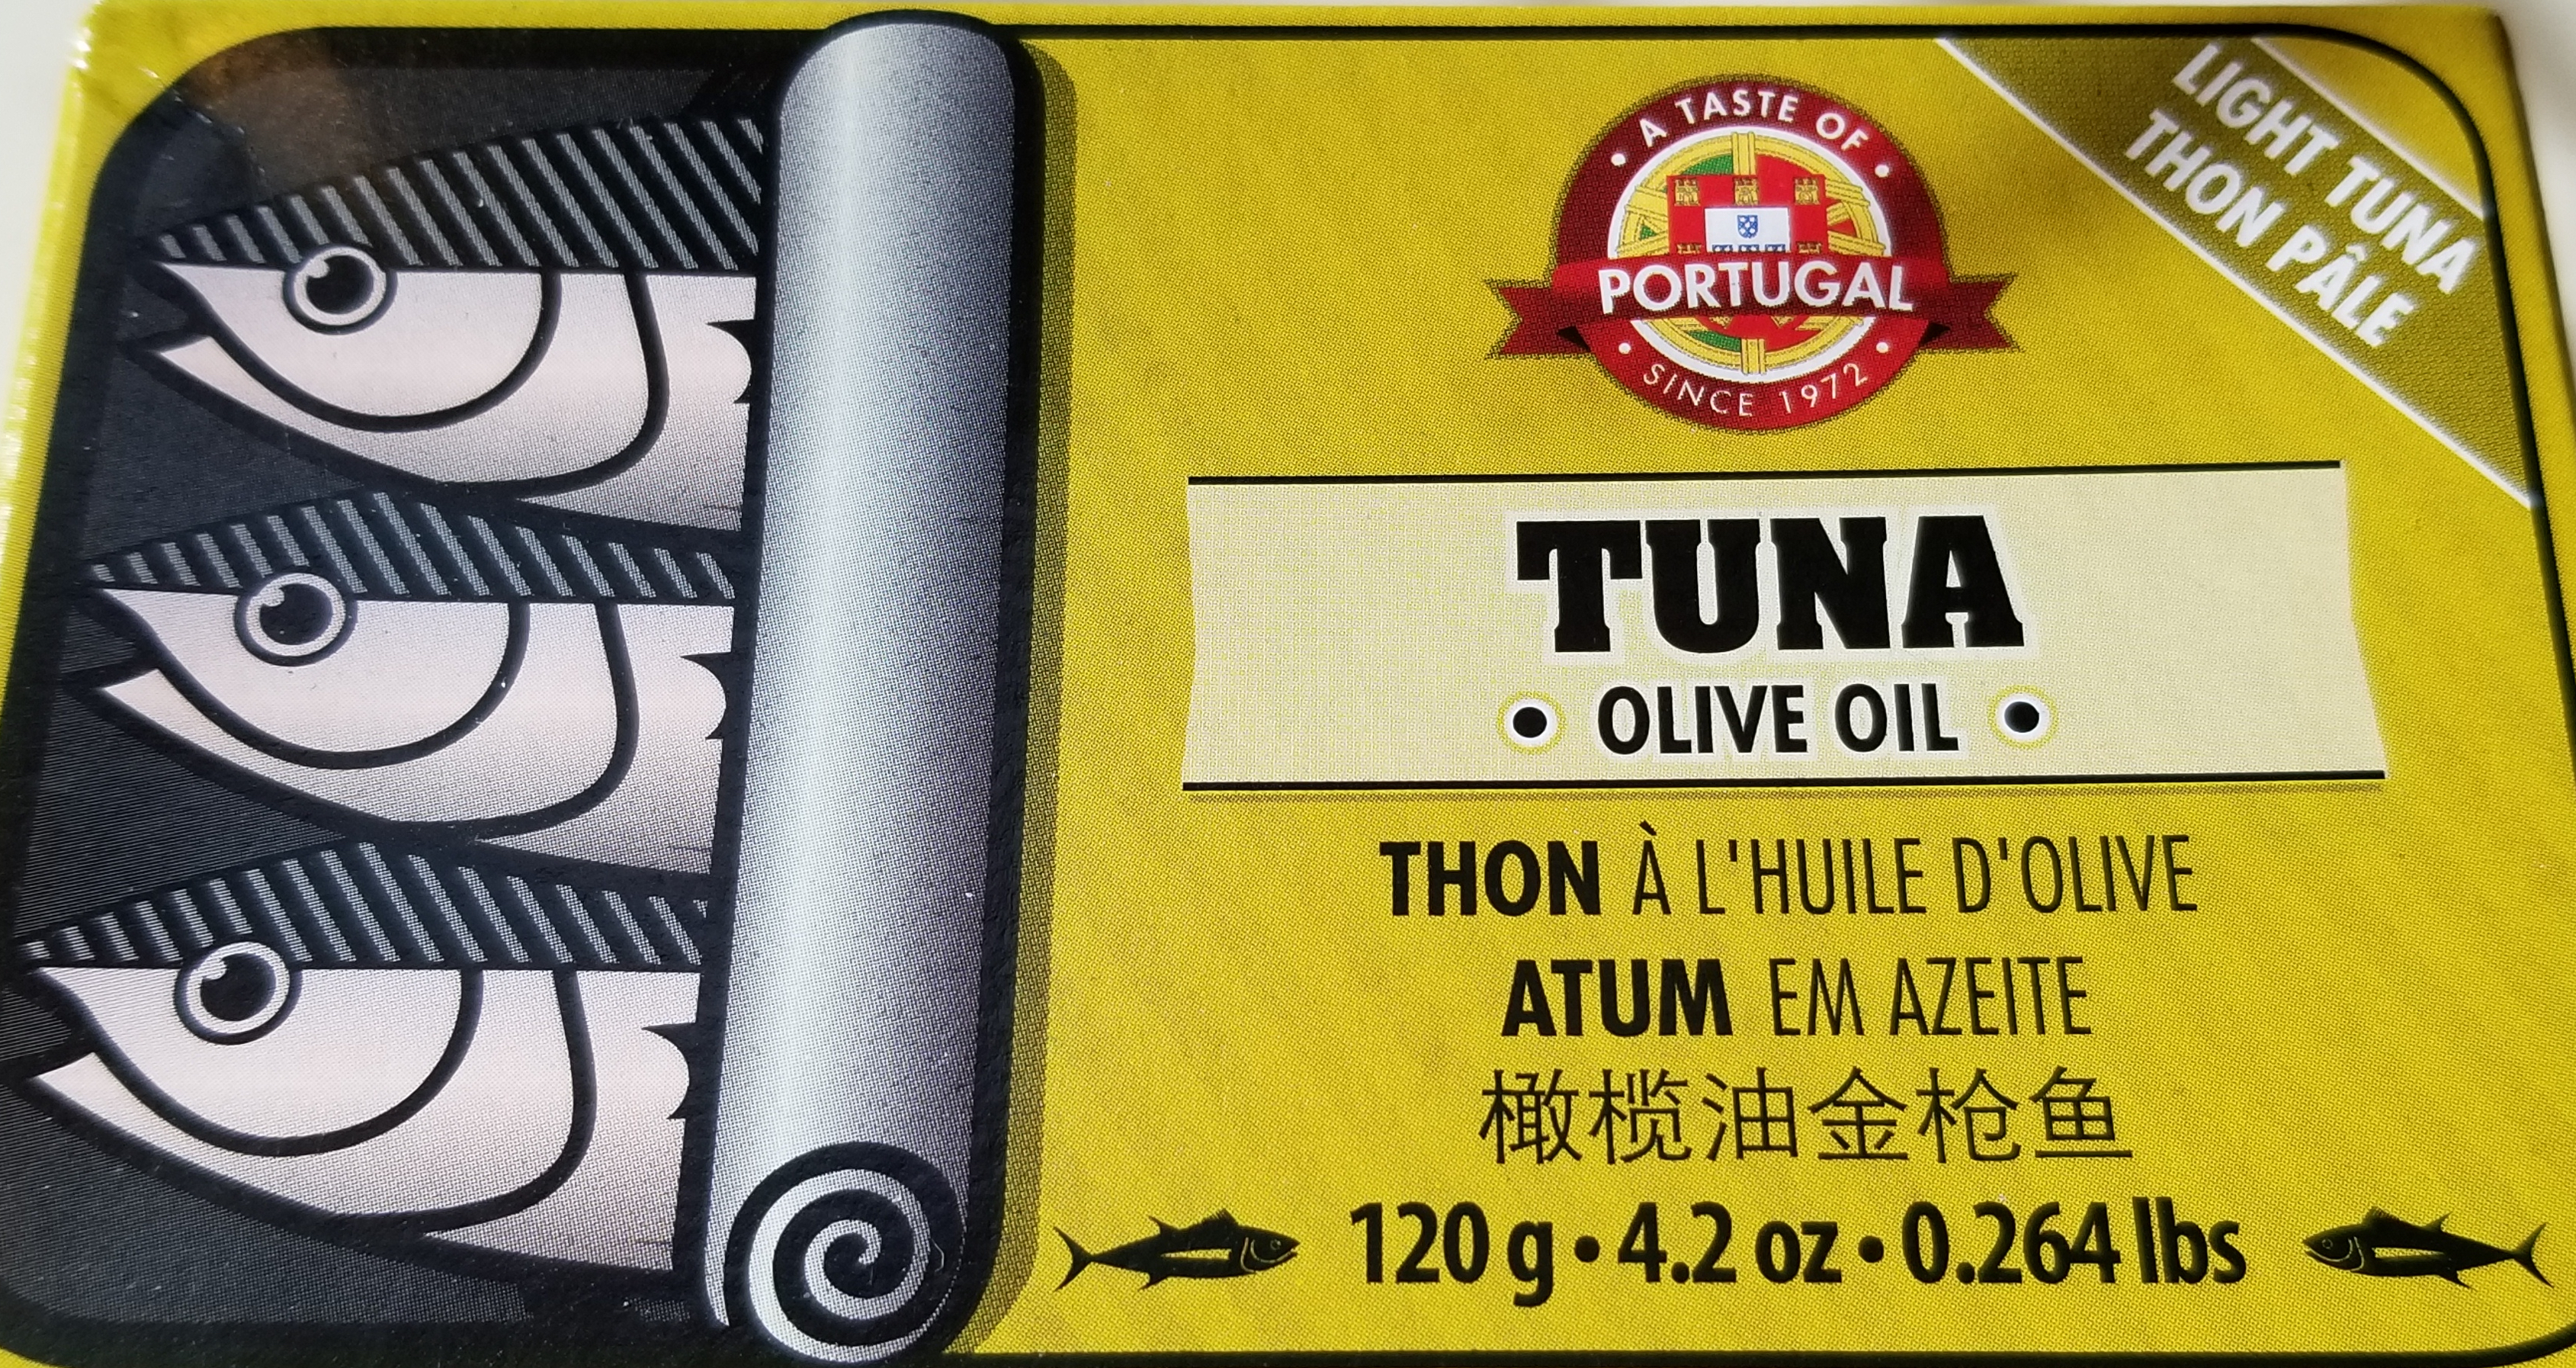 Taste of Portugal brand tuna